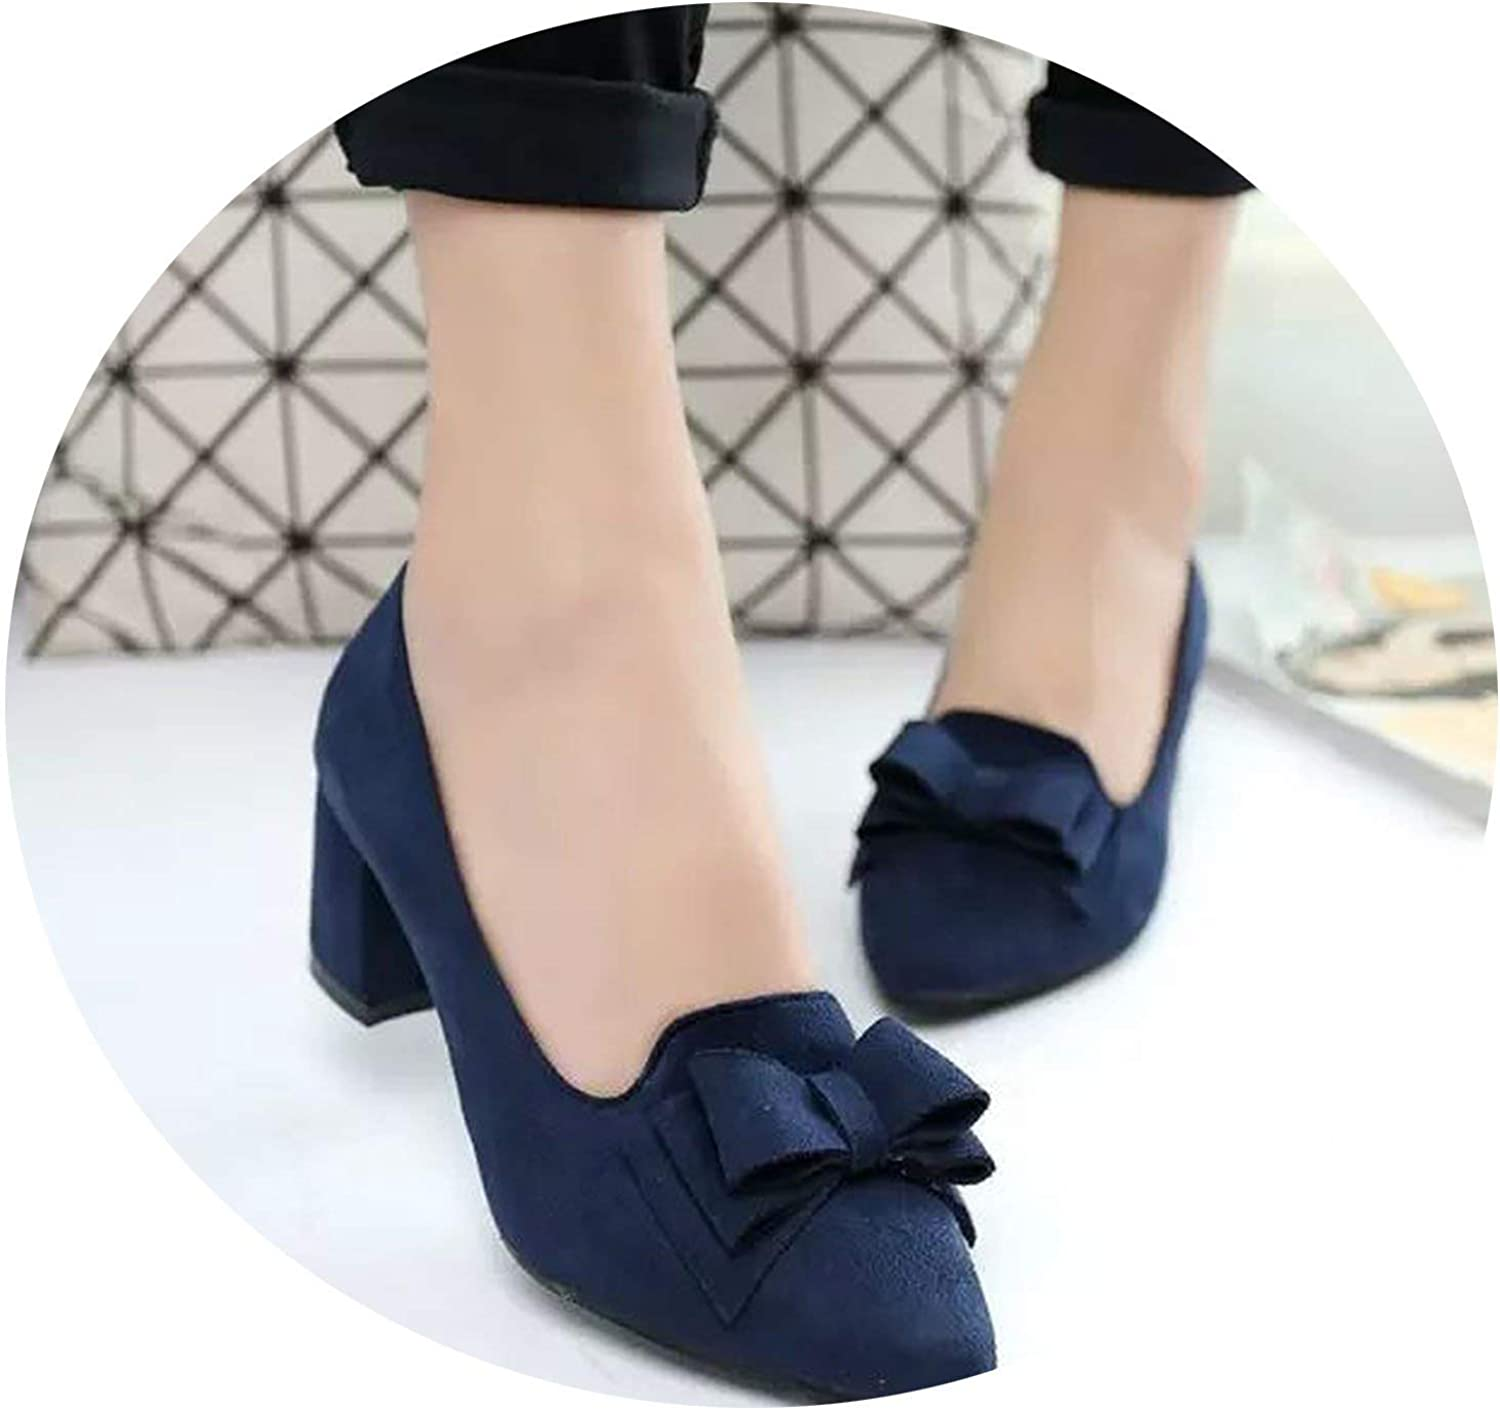 Lewis Pitman Big Size Women shoes Pointed Toe Bowtie Boat shoes Office Dress shoes Woman High Heels Pumps Square Heeled Ladies shoes